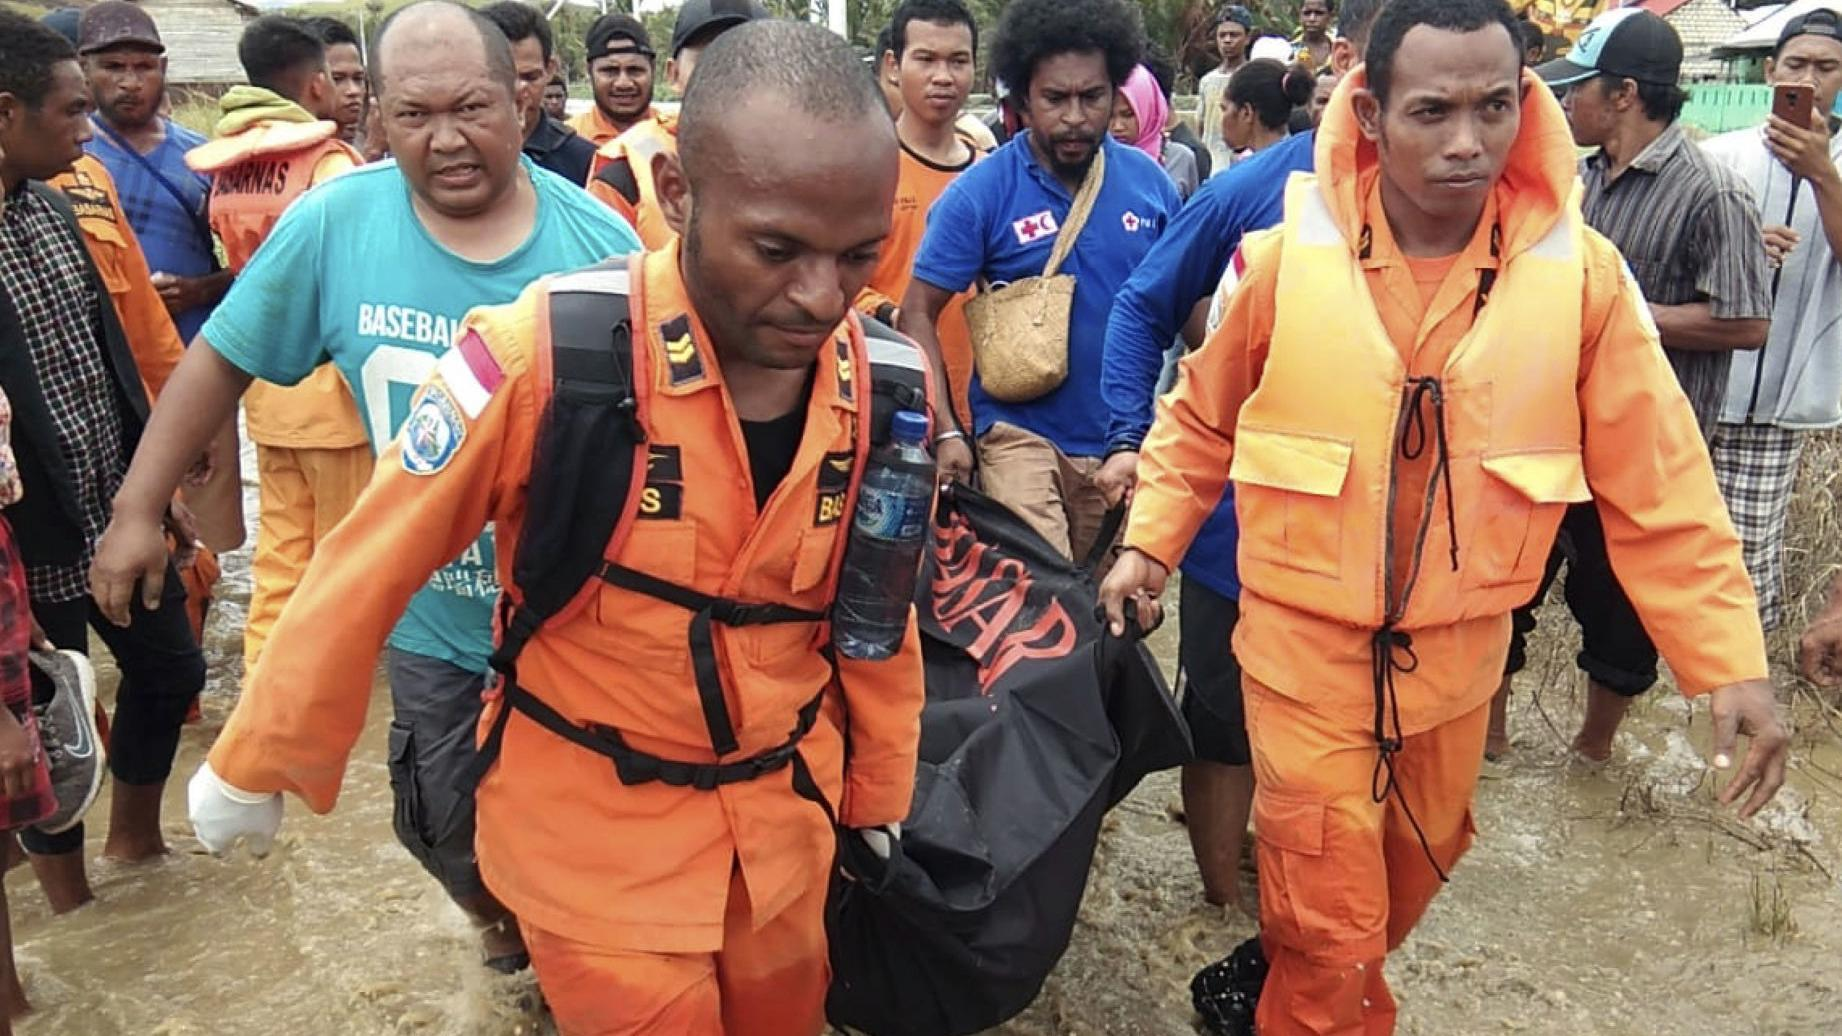 Flash floods, earthquake kill more than 80 in disaster-prone Indonesia